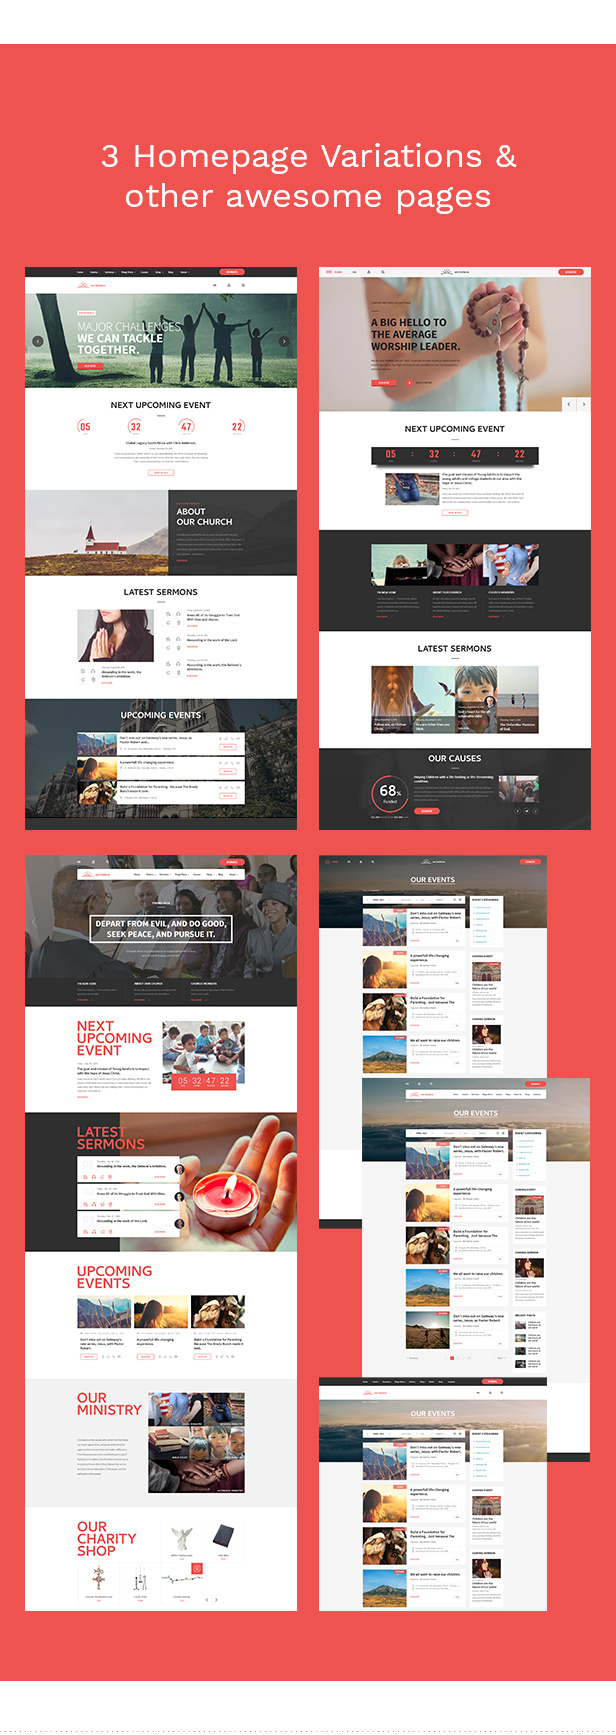 WeBelieve - Church, Charity, Nonprofit & Fundraising Responsive HTML5 Template - 9